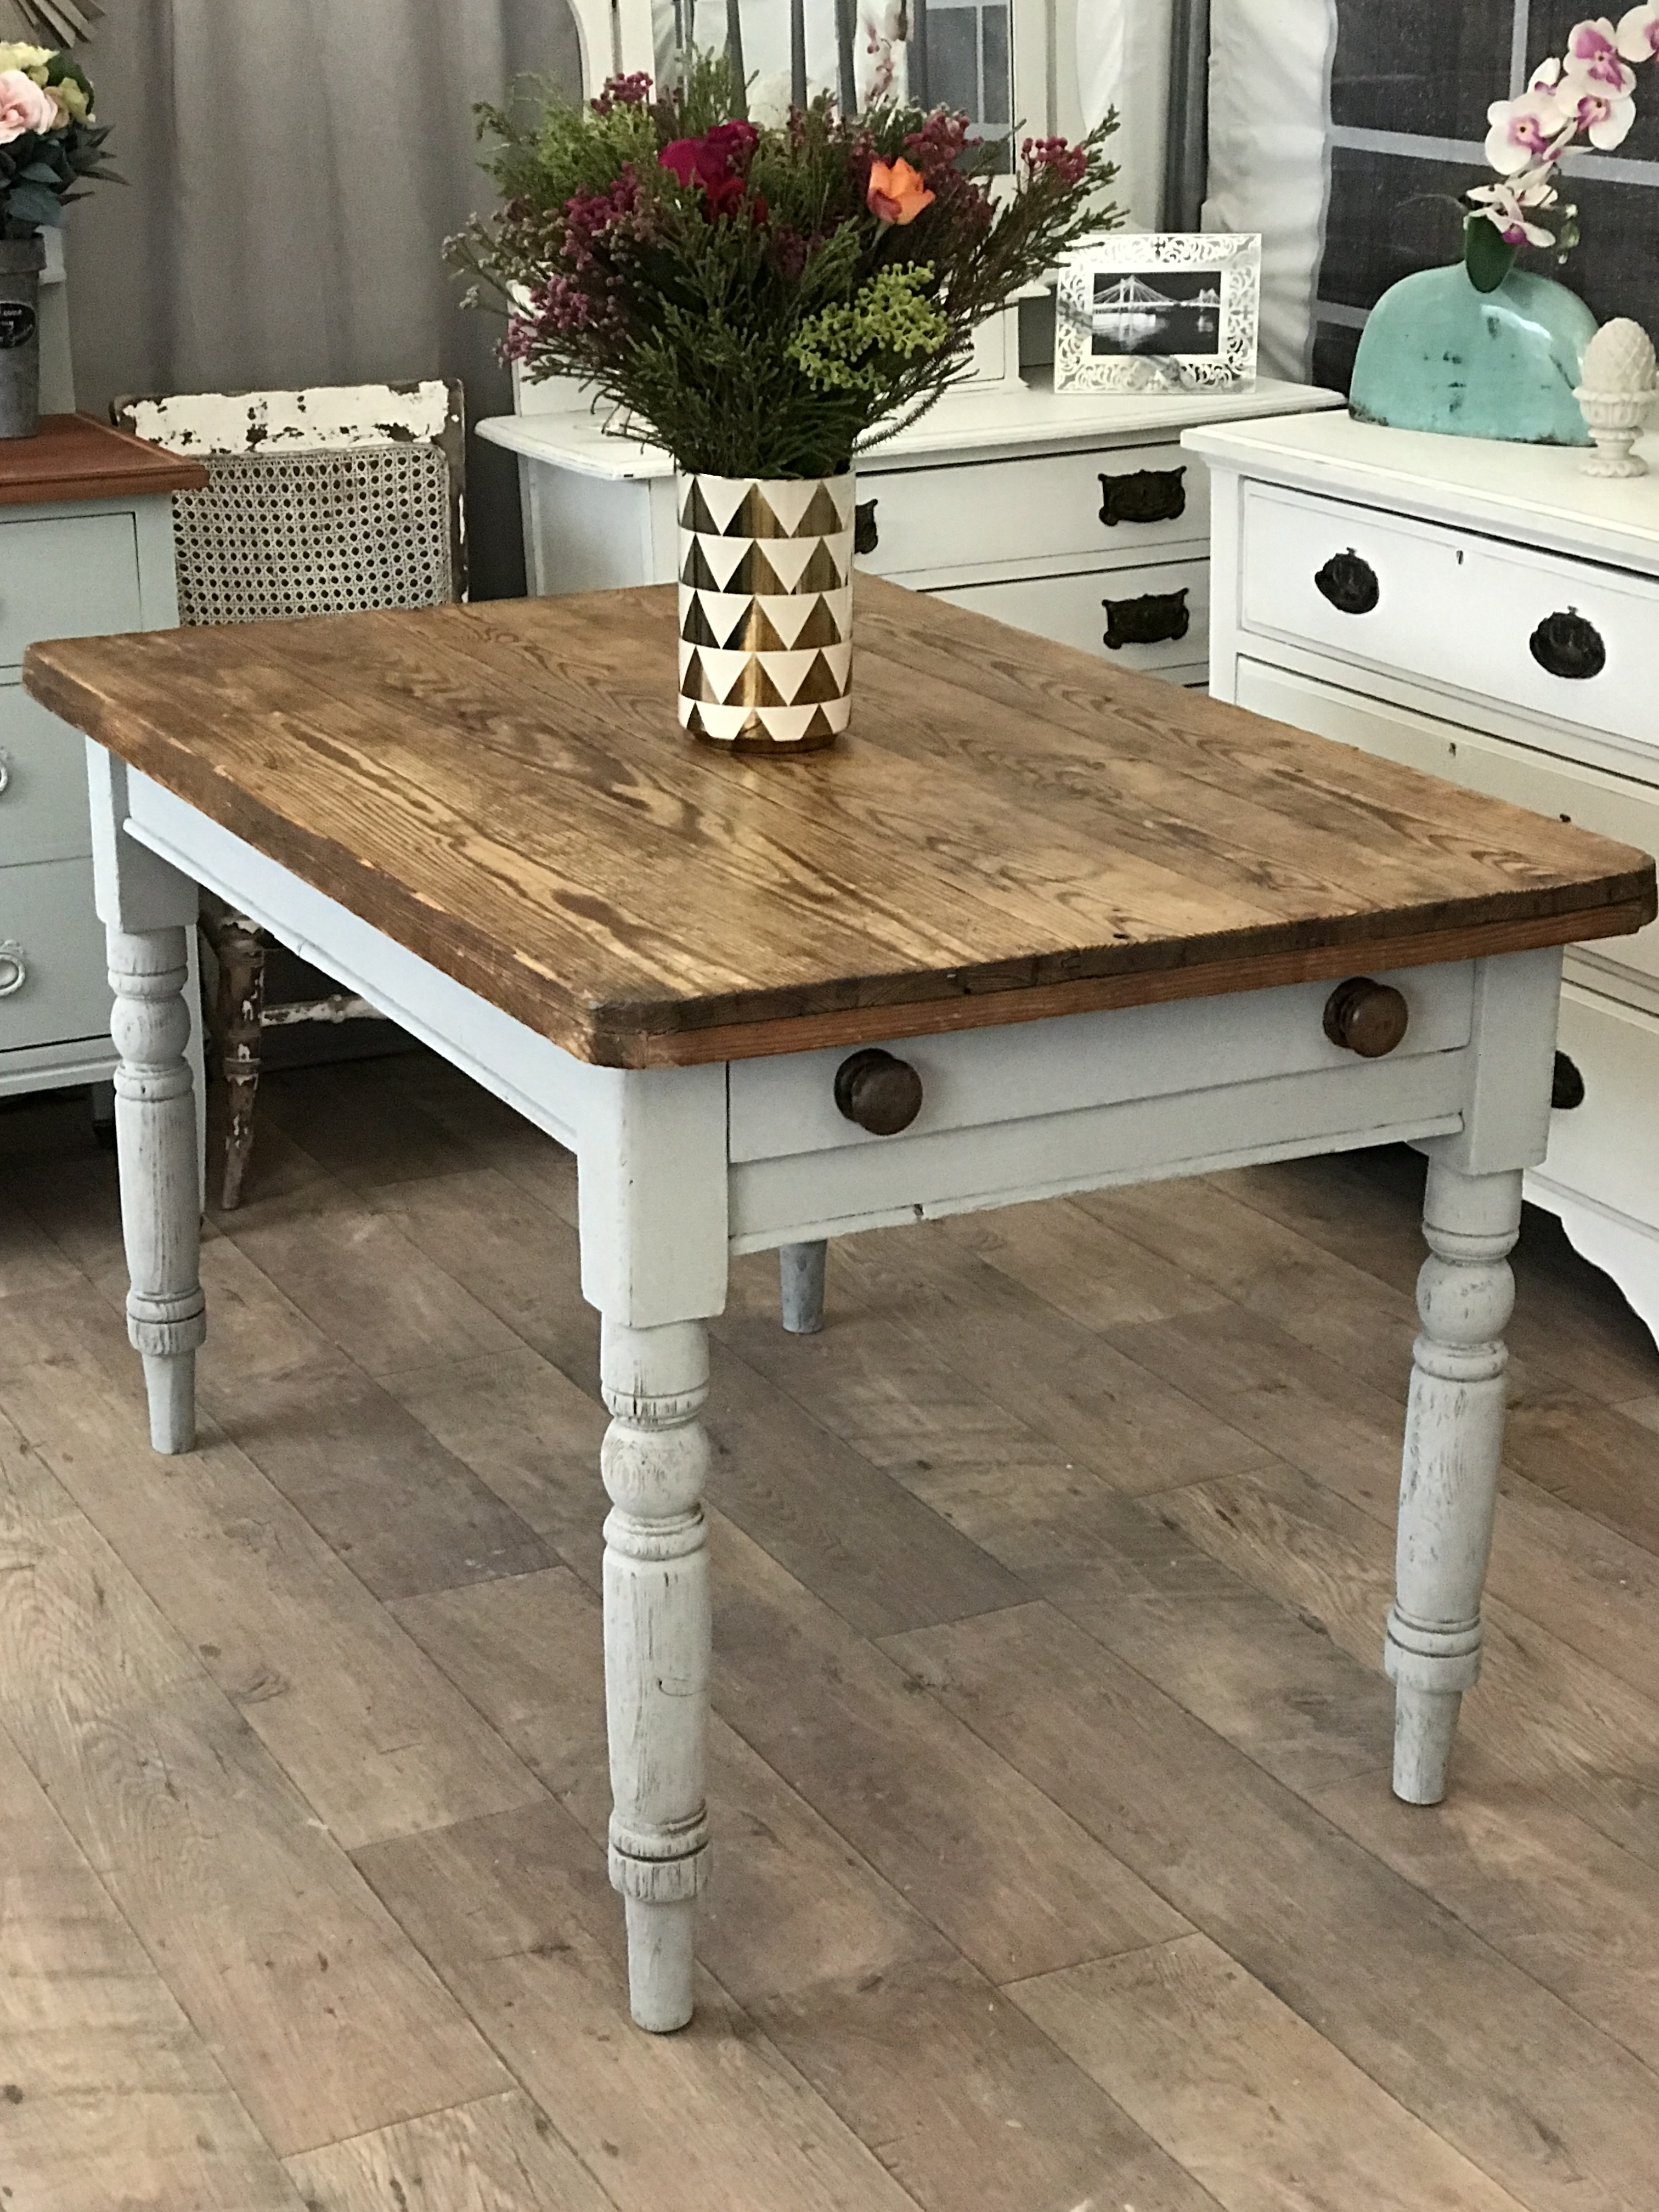 Shabby Chic Victorian Solid Pine Dining Kitchen Table Eclectivo London Furniture With Soul